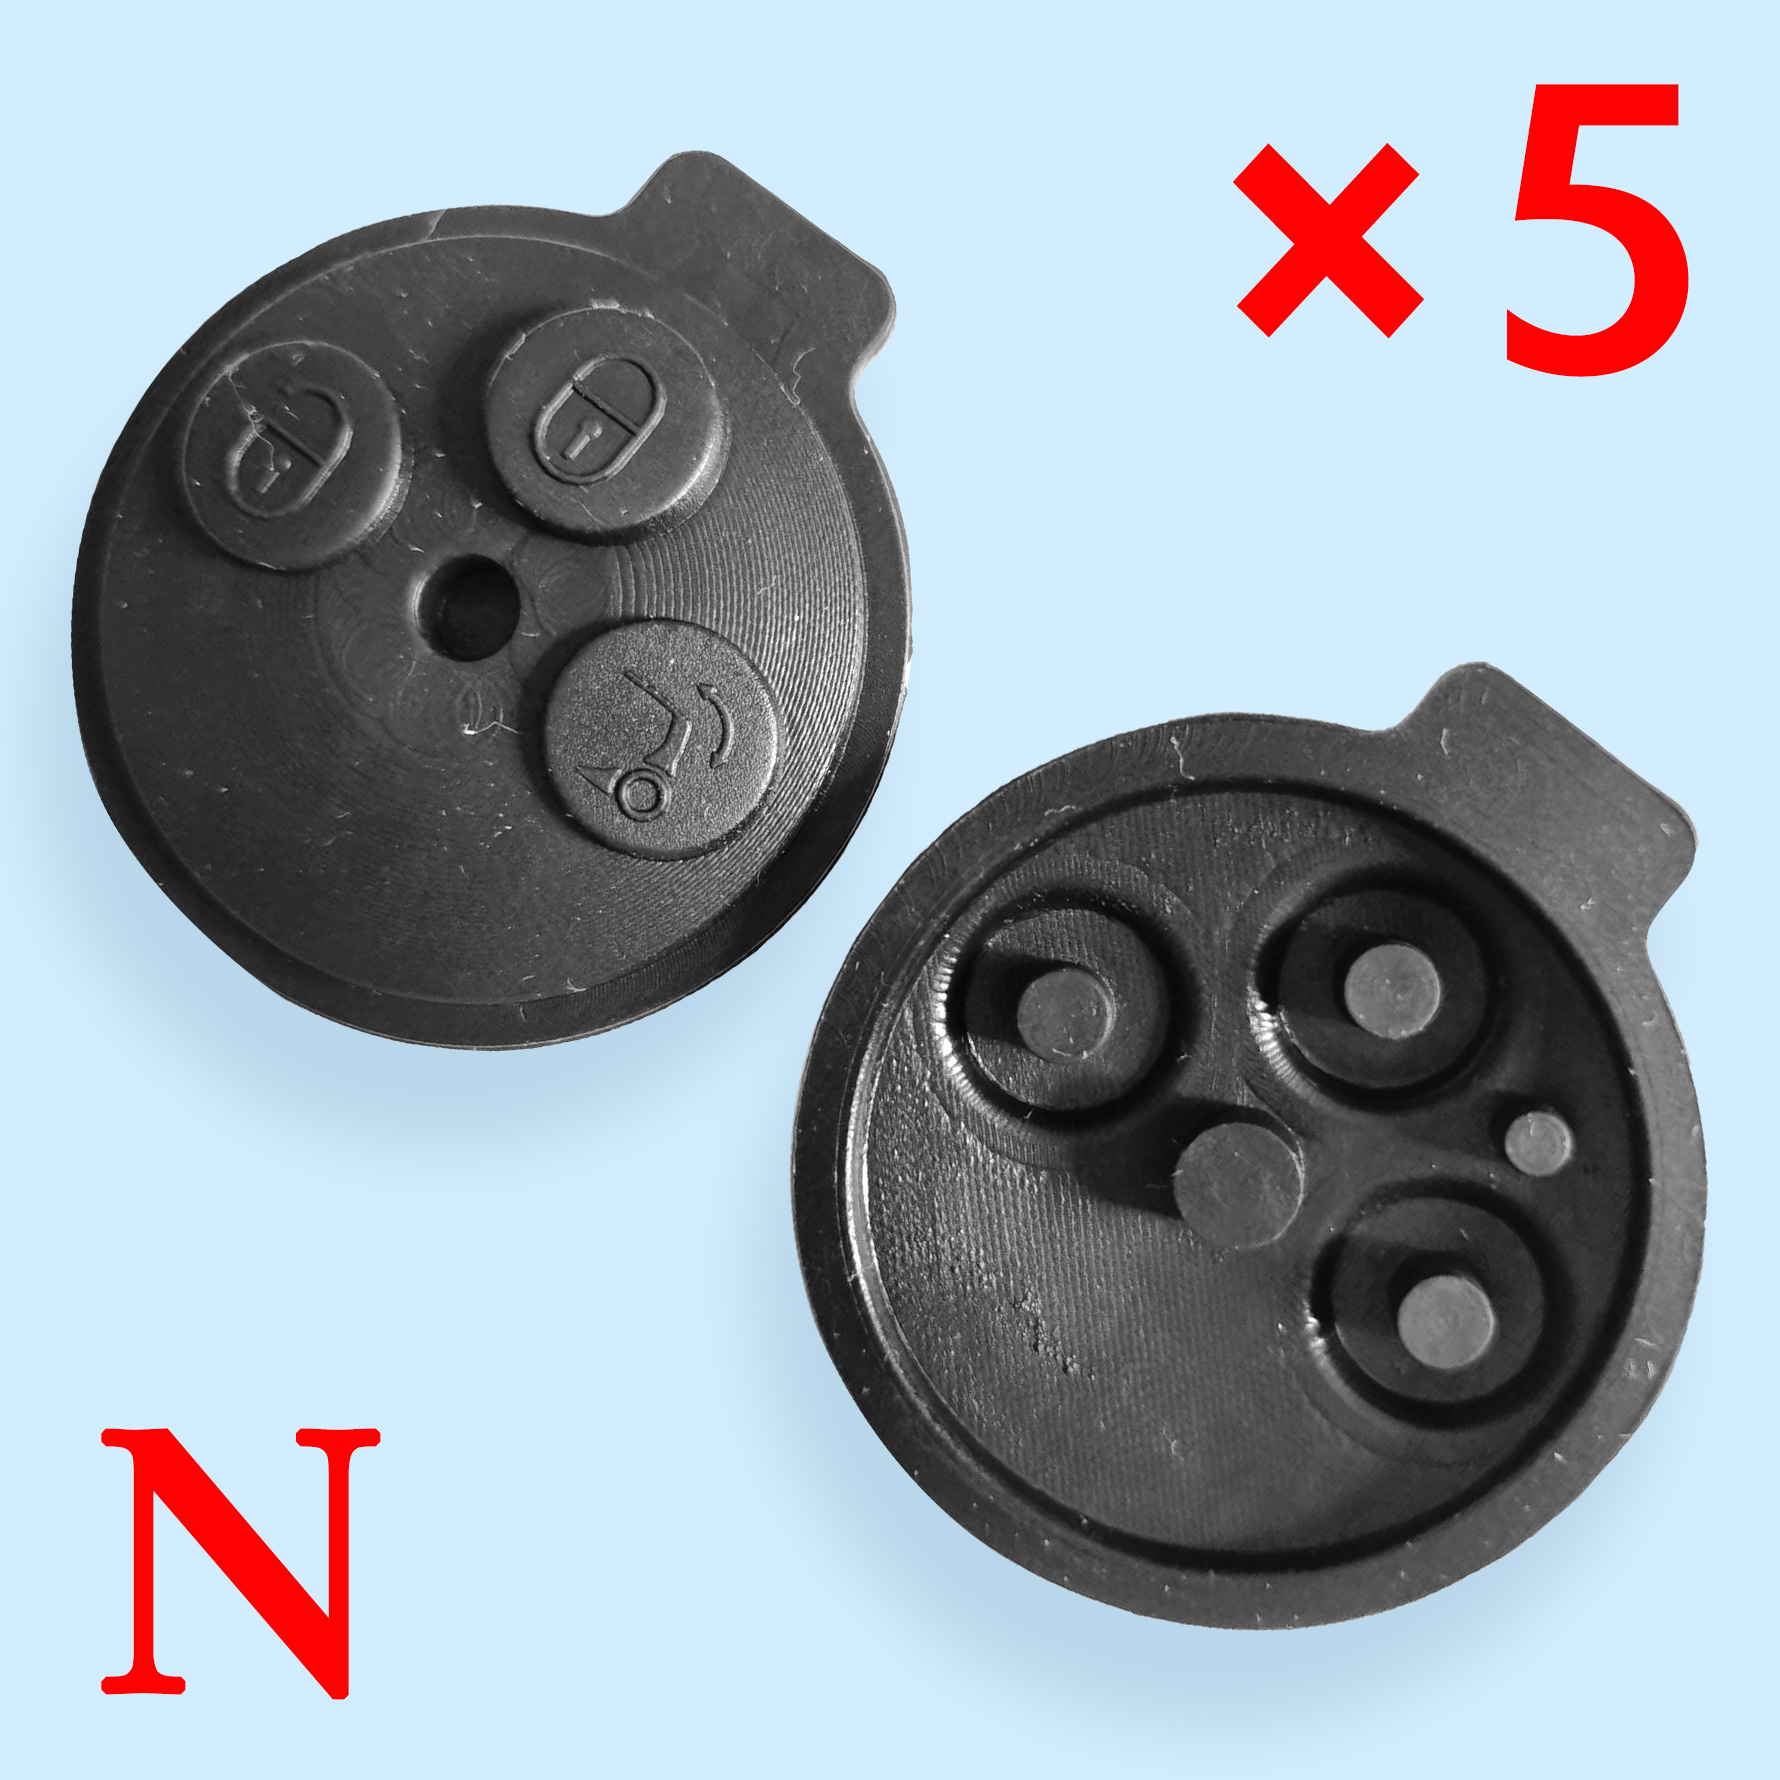 3 Buttons Key Shell Rubber Pad for Smart  - 10 pcs